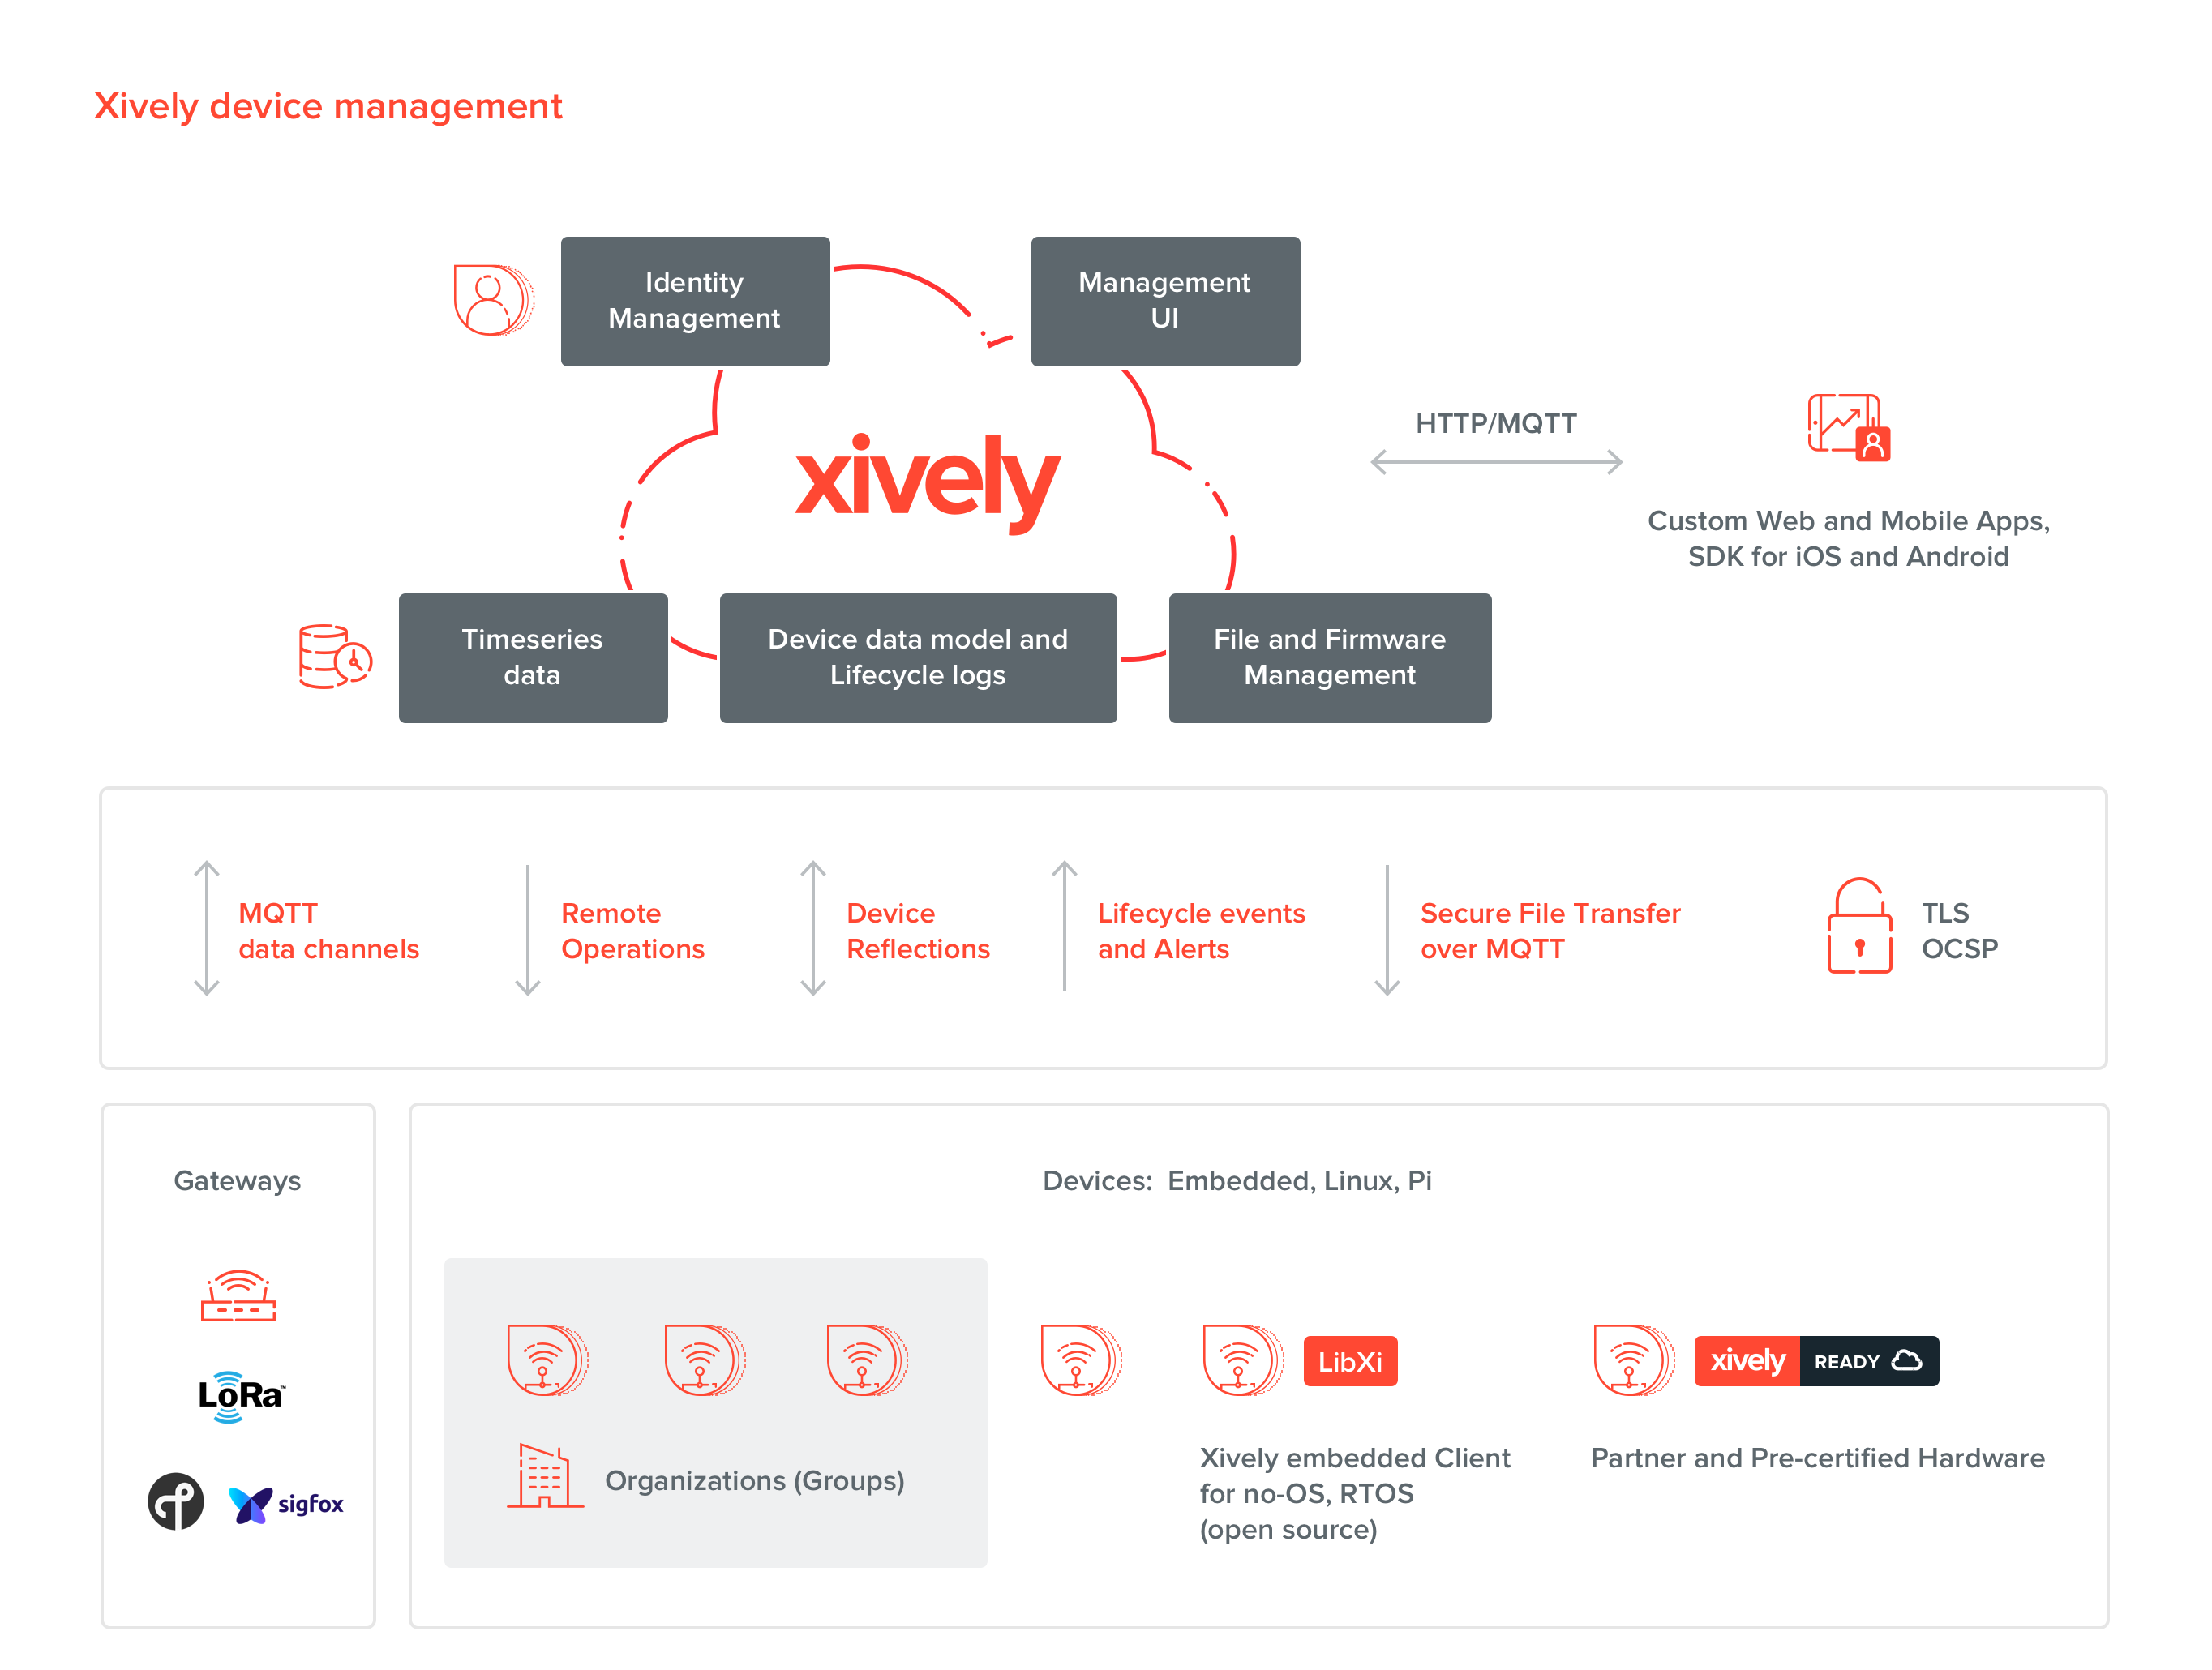 Xively platform device management overview